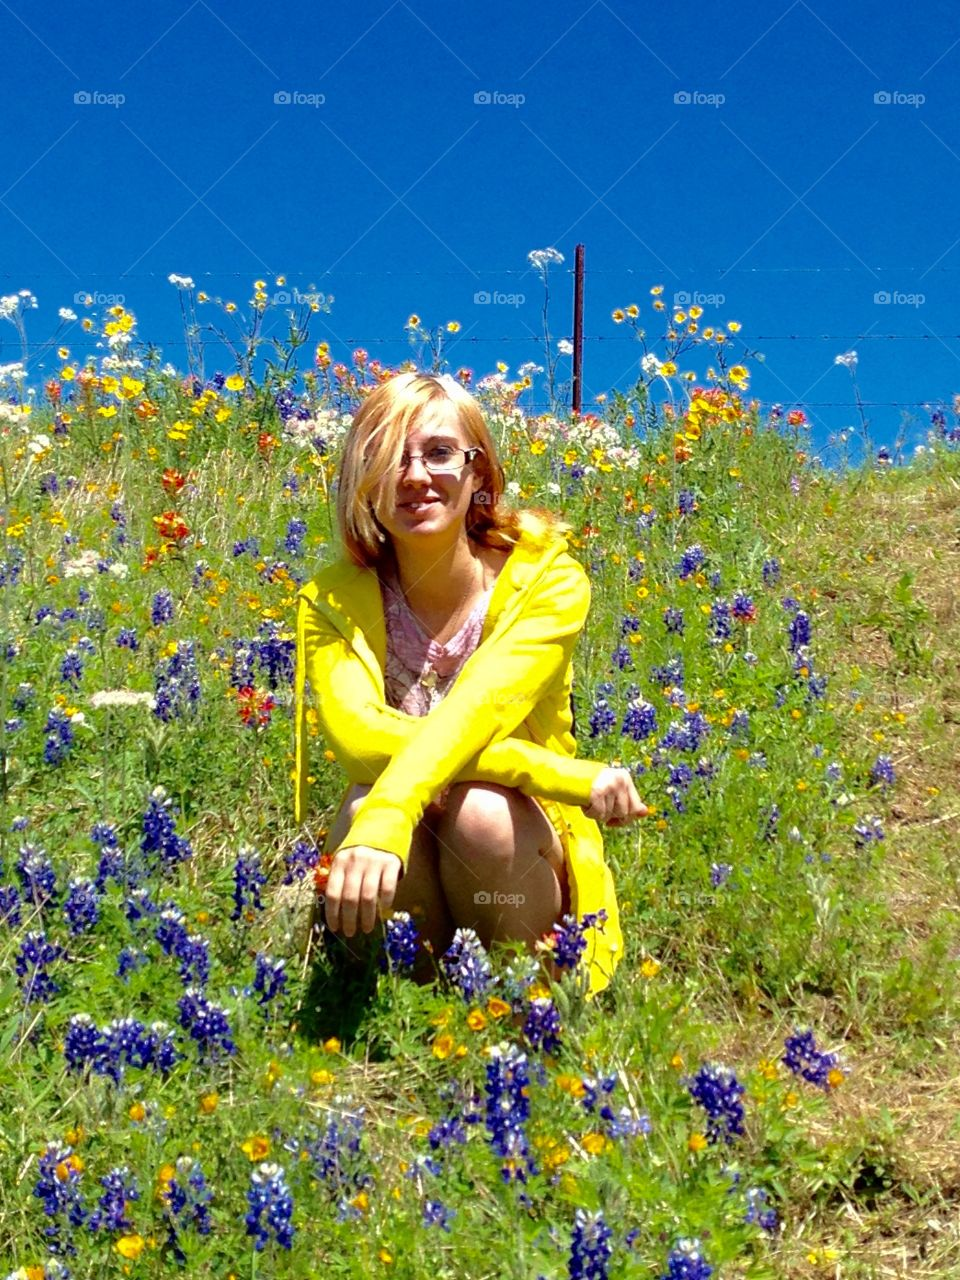 Blonde woman in spectacle sitting on flowers field